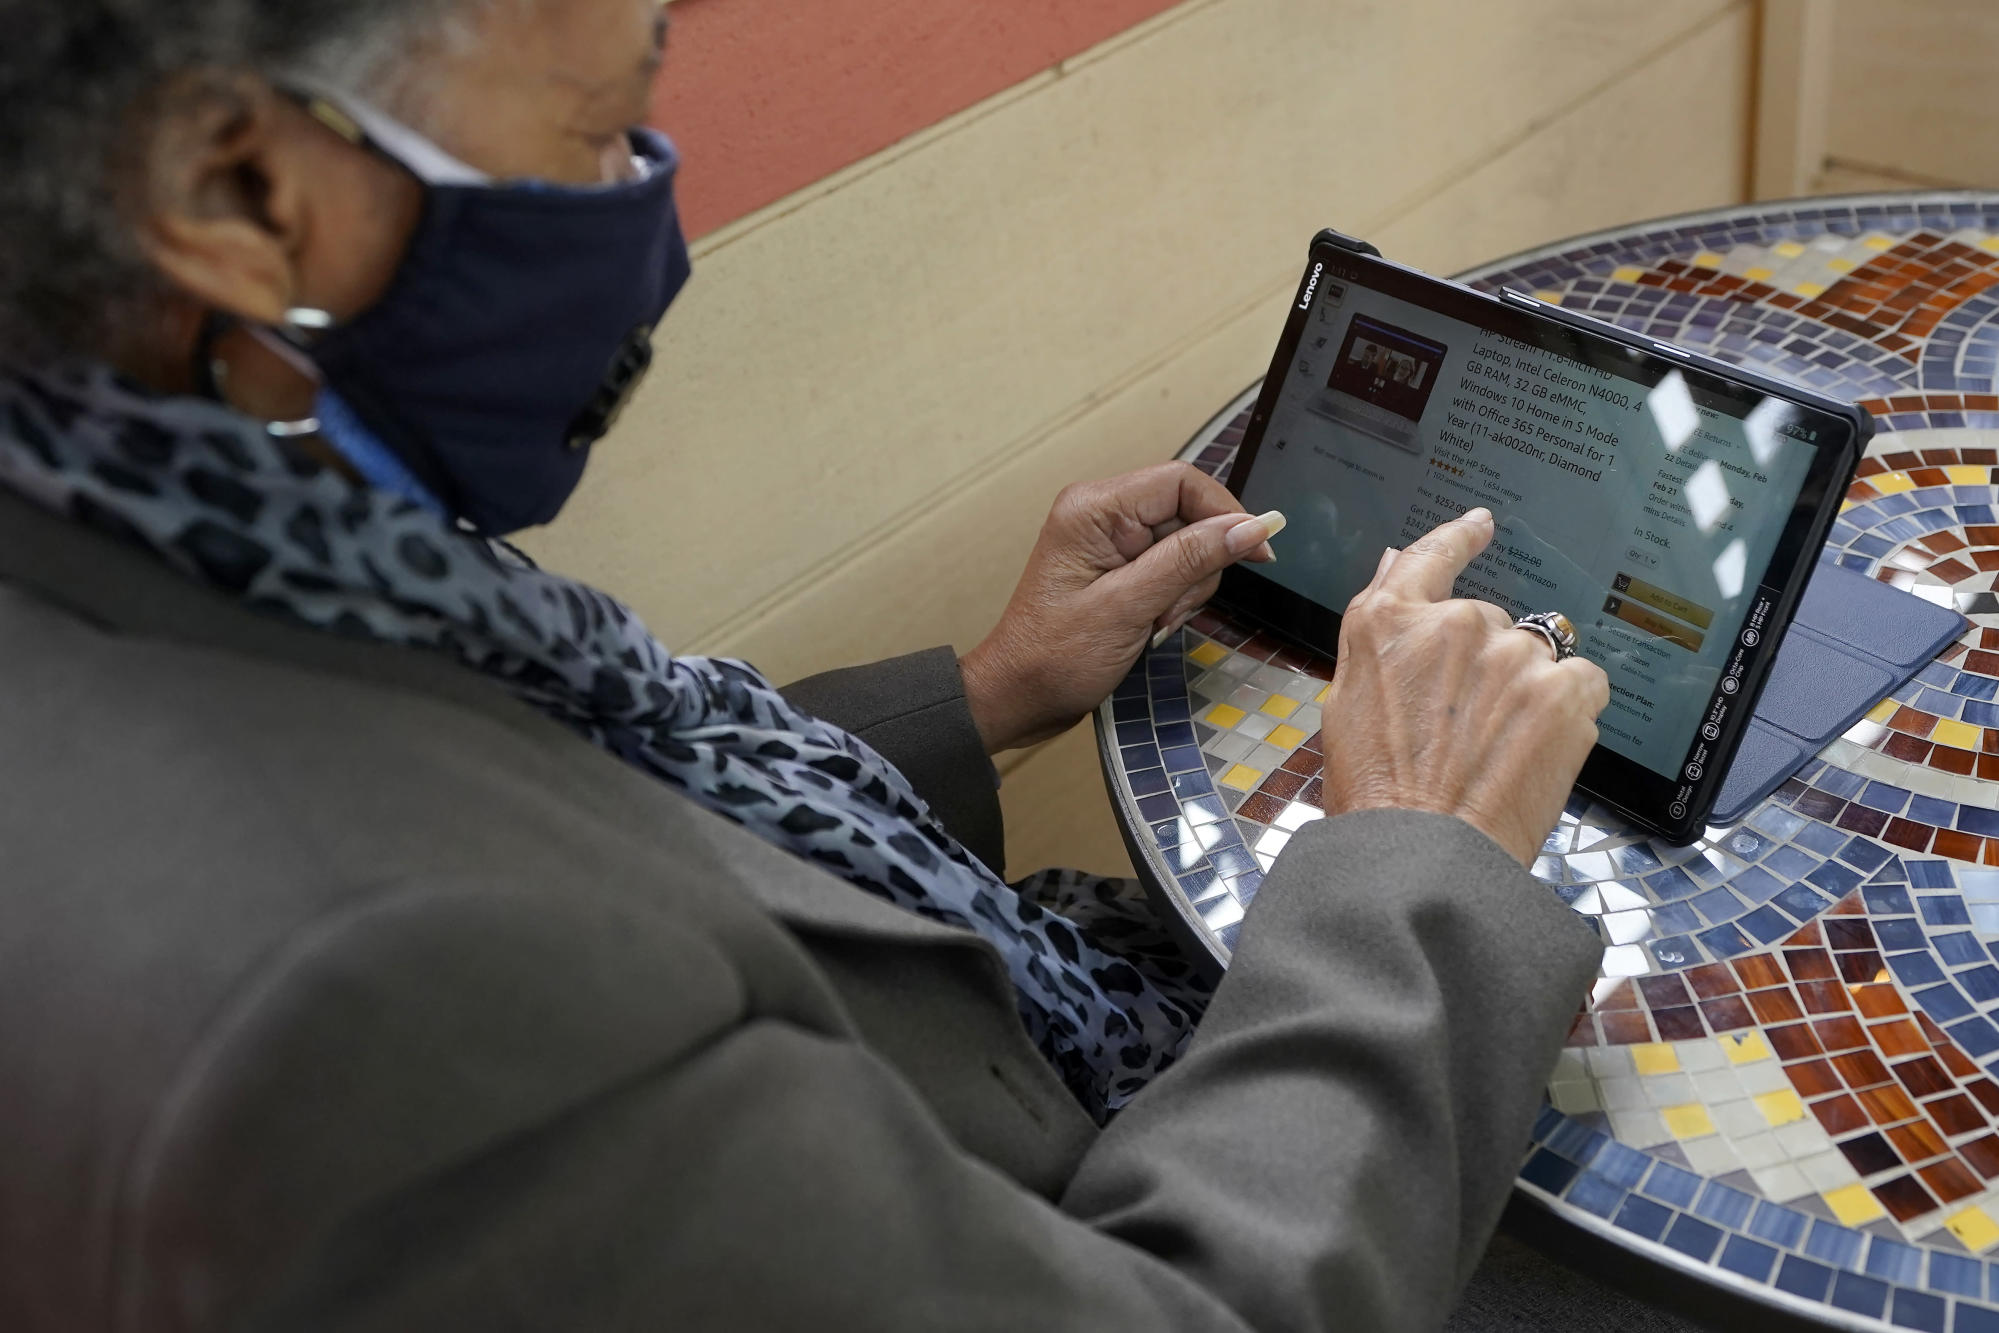 Shopping online eases isolation for older adults